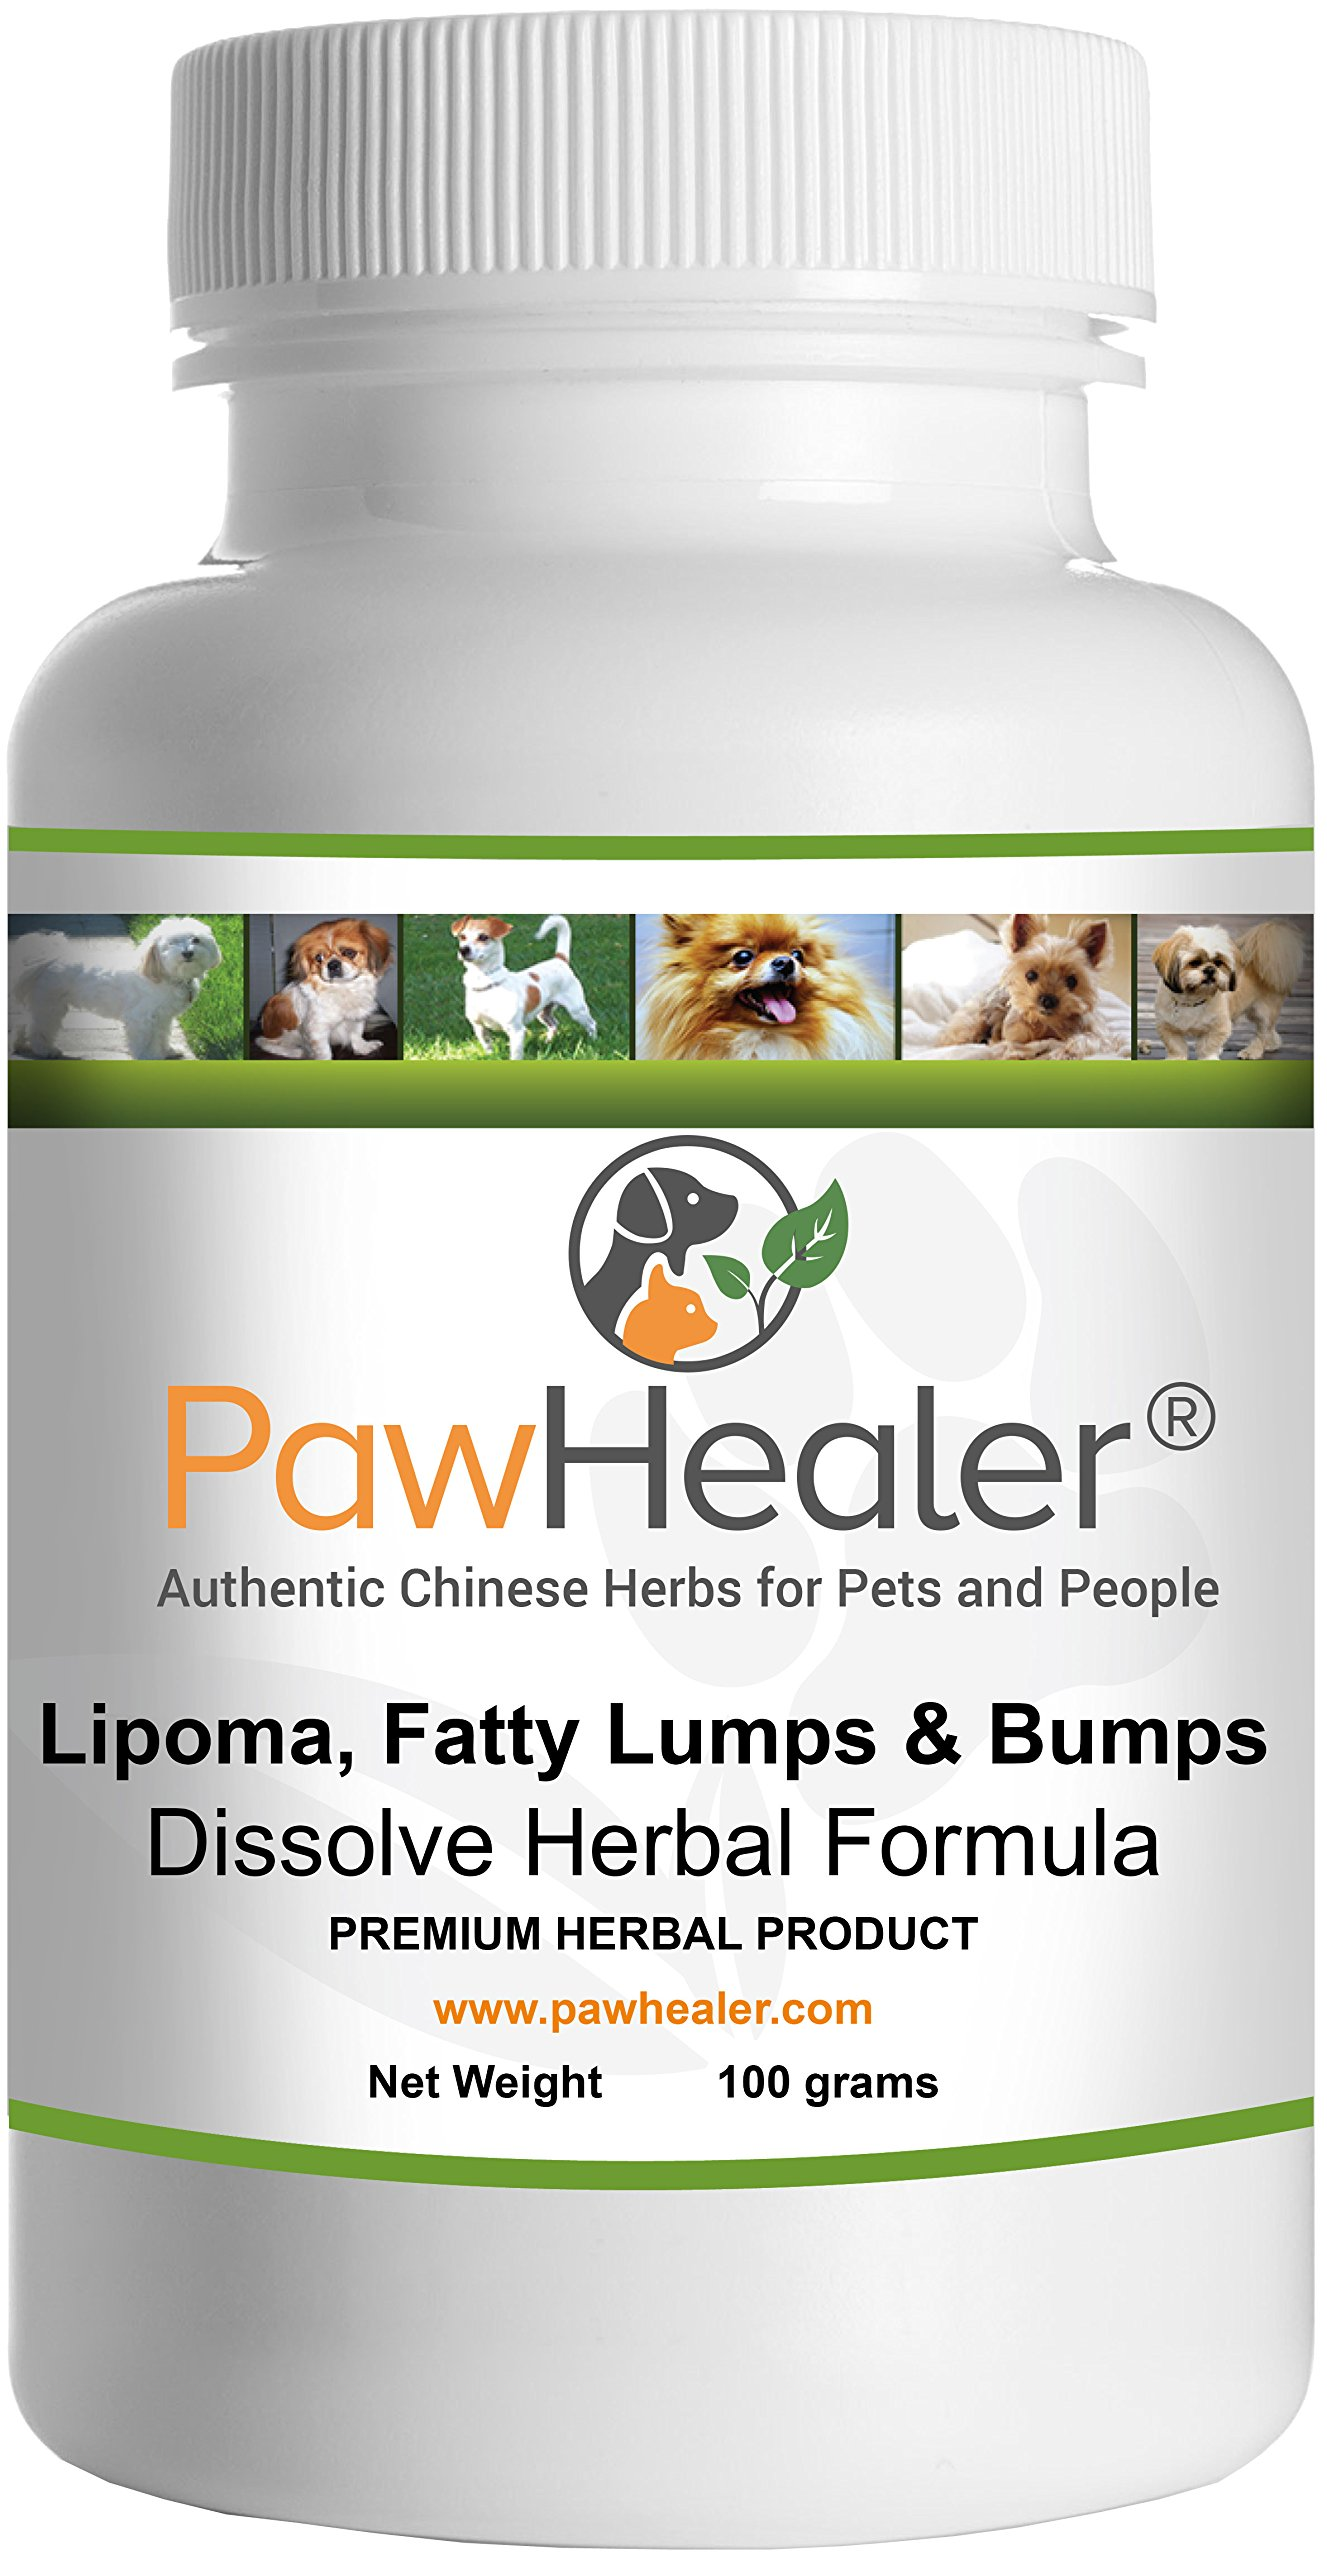 Dissolve Herbal Formula - 100 Grams Powder - Remedy for Fatty Lumps & Bumps in Dogs & Pets …